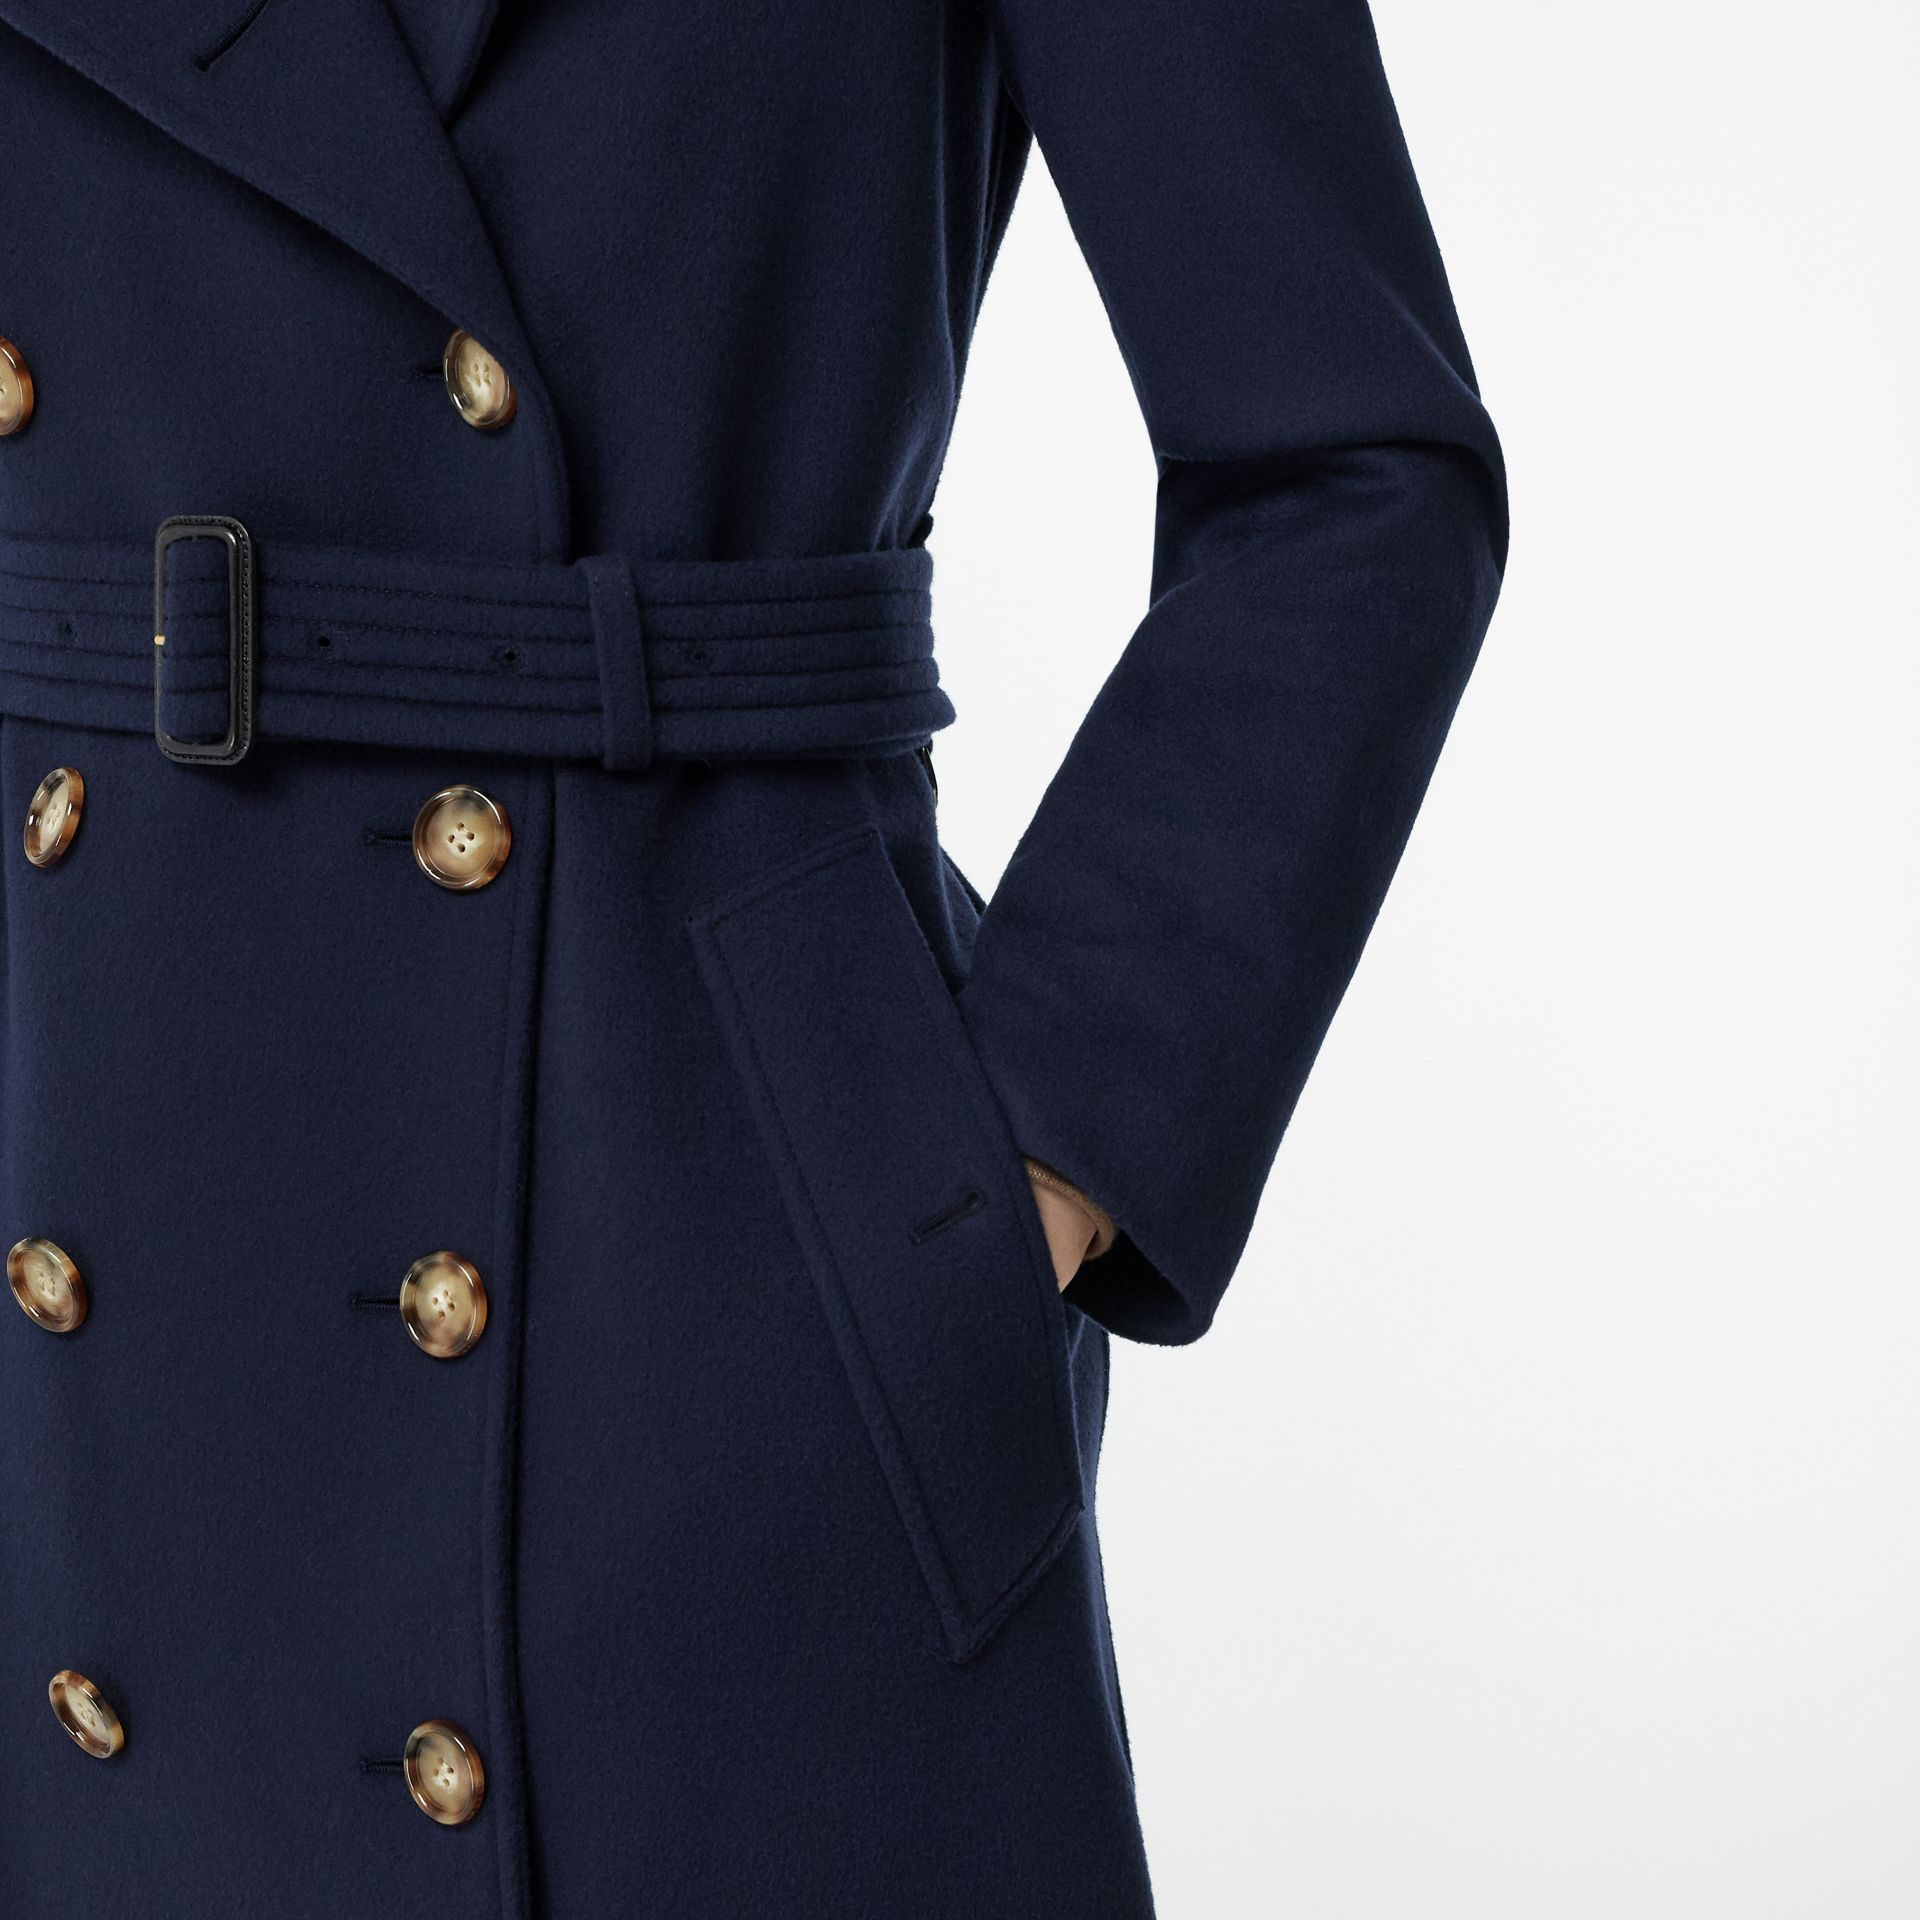 Cashmere Trench Coat in Navy - Women | Burberry - gallery image 5